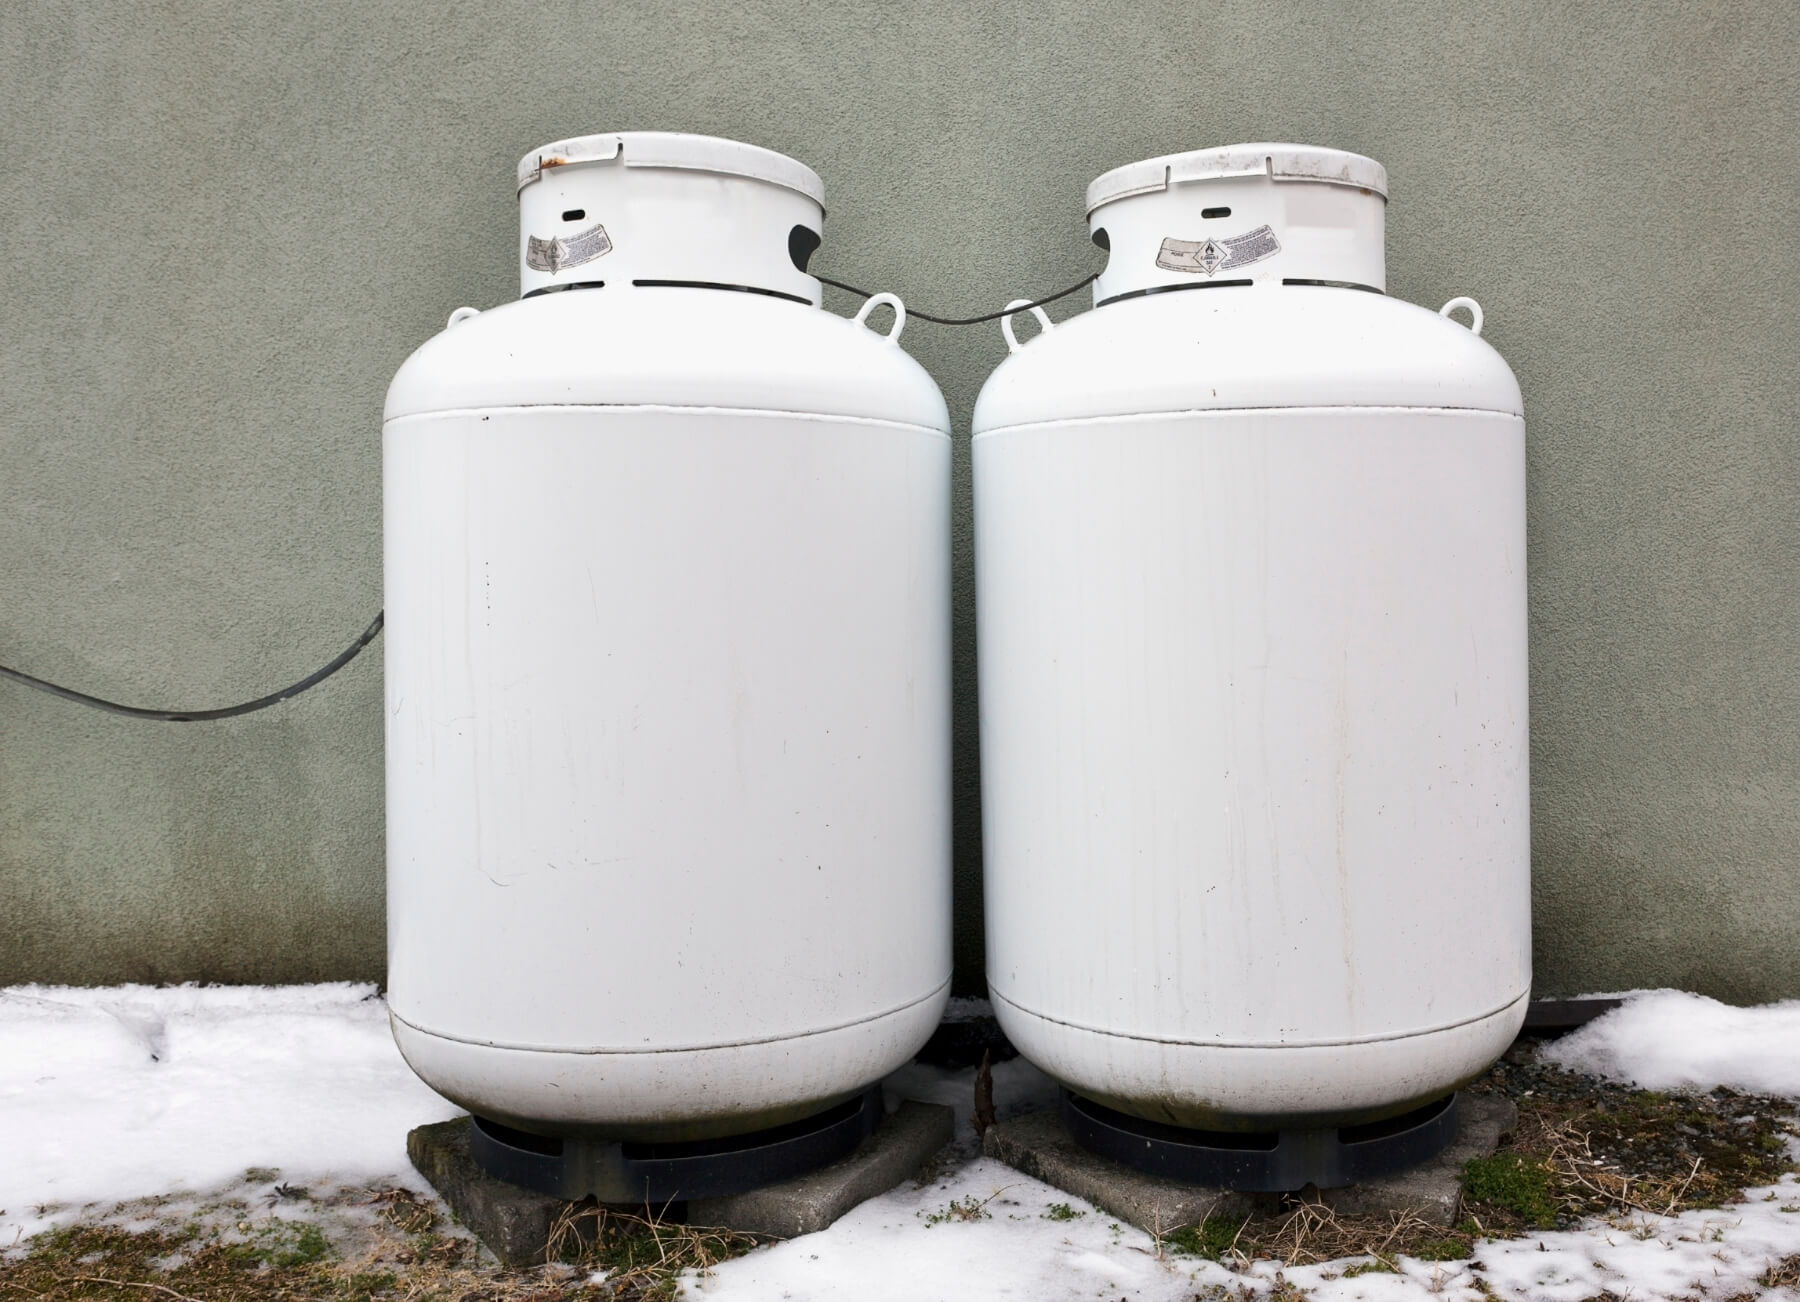 Two propane tanks for safe tank maintenance